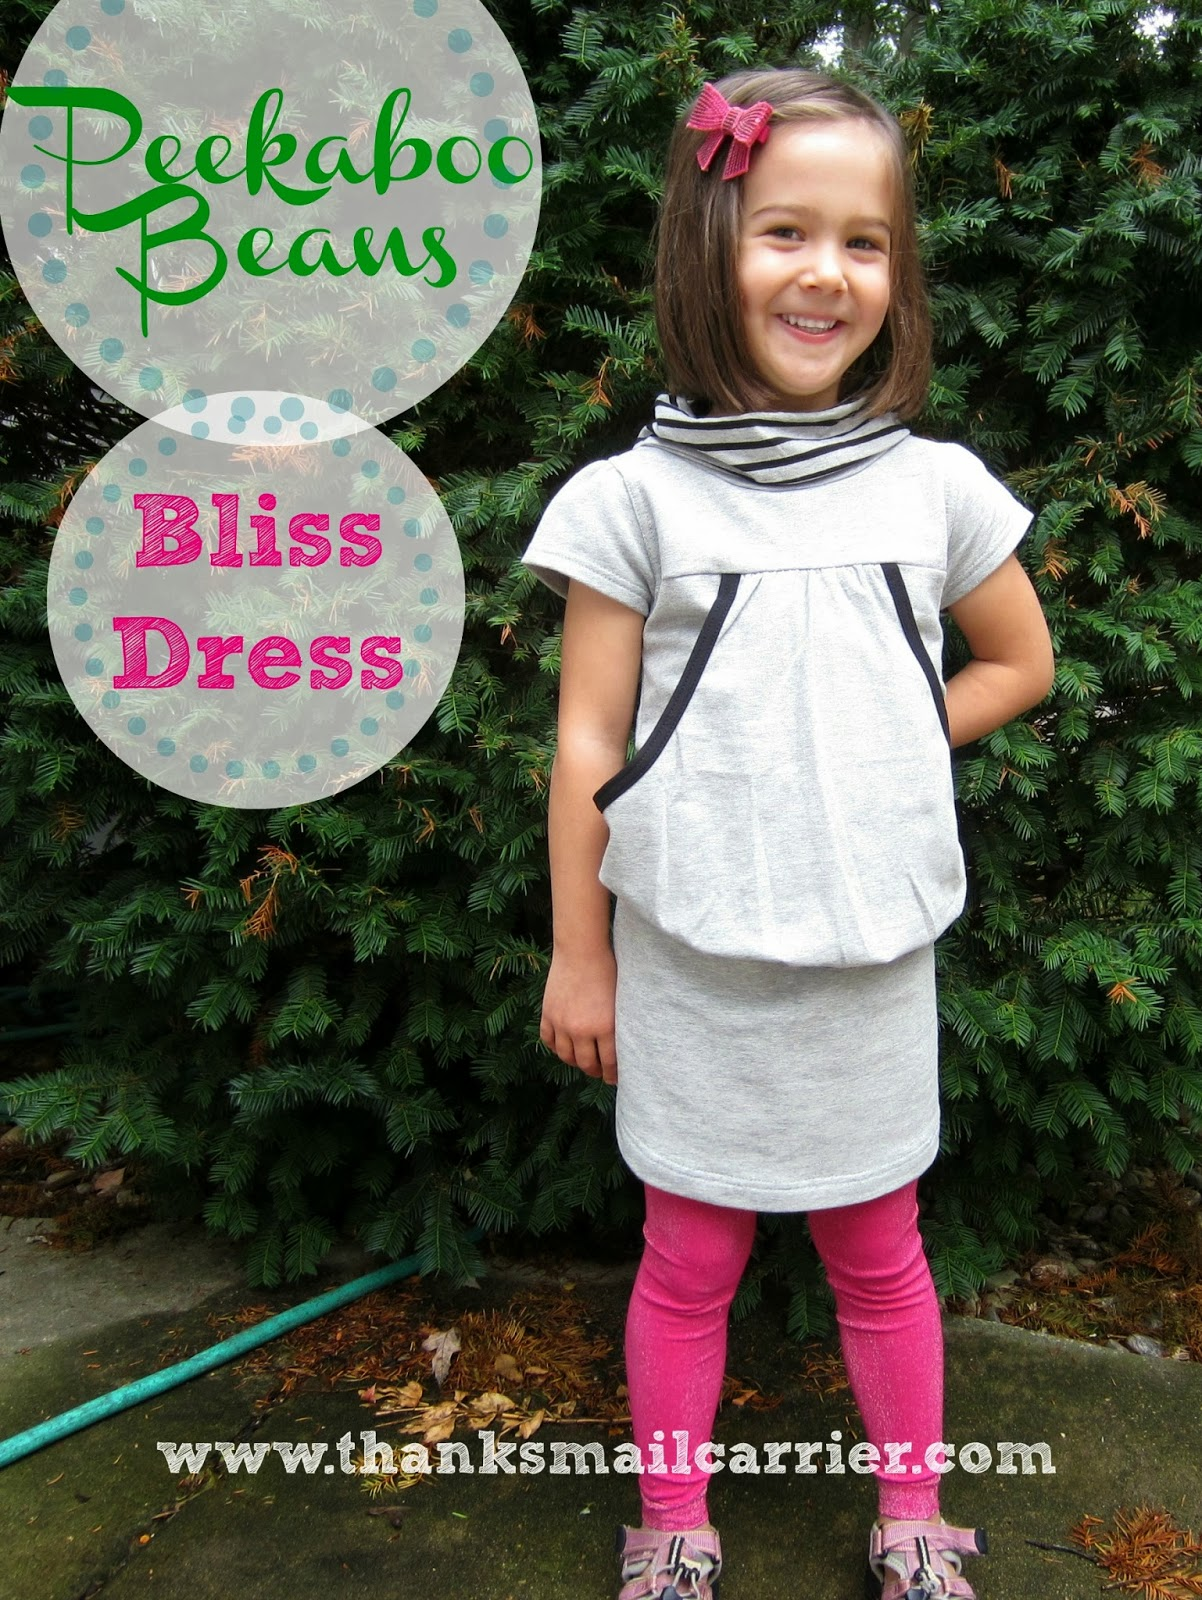 Peekaboo Beans Bliss Dress